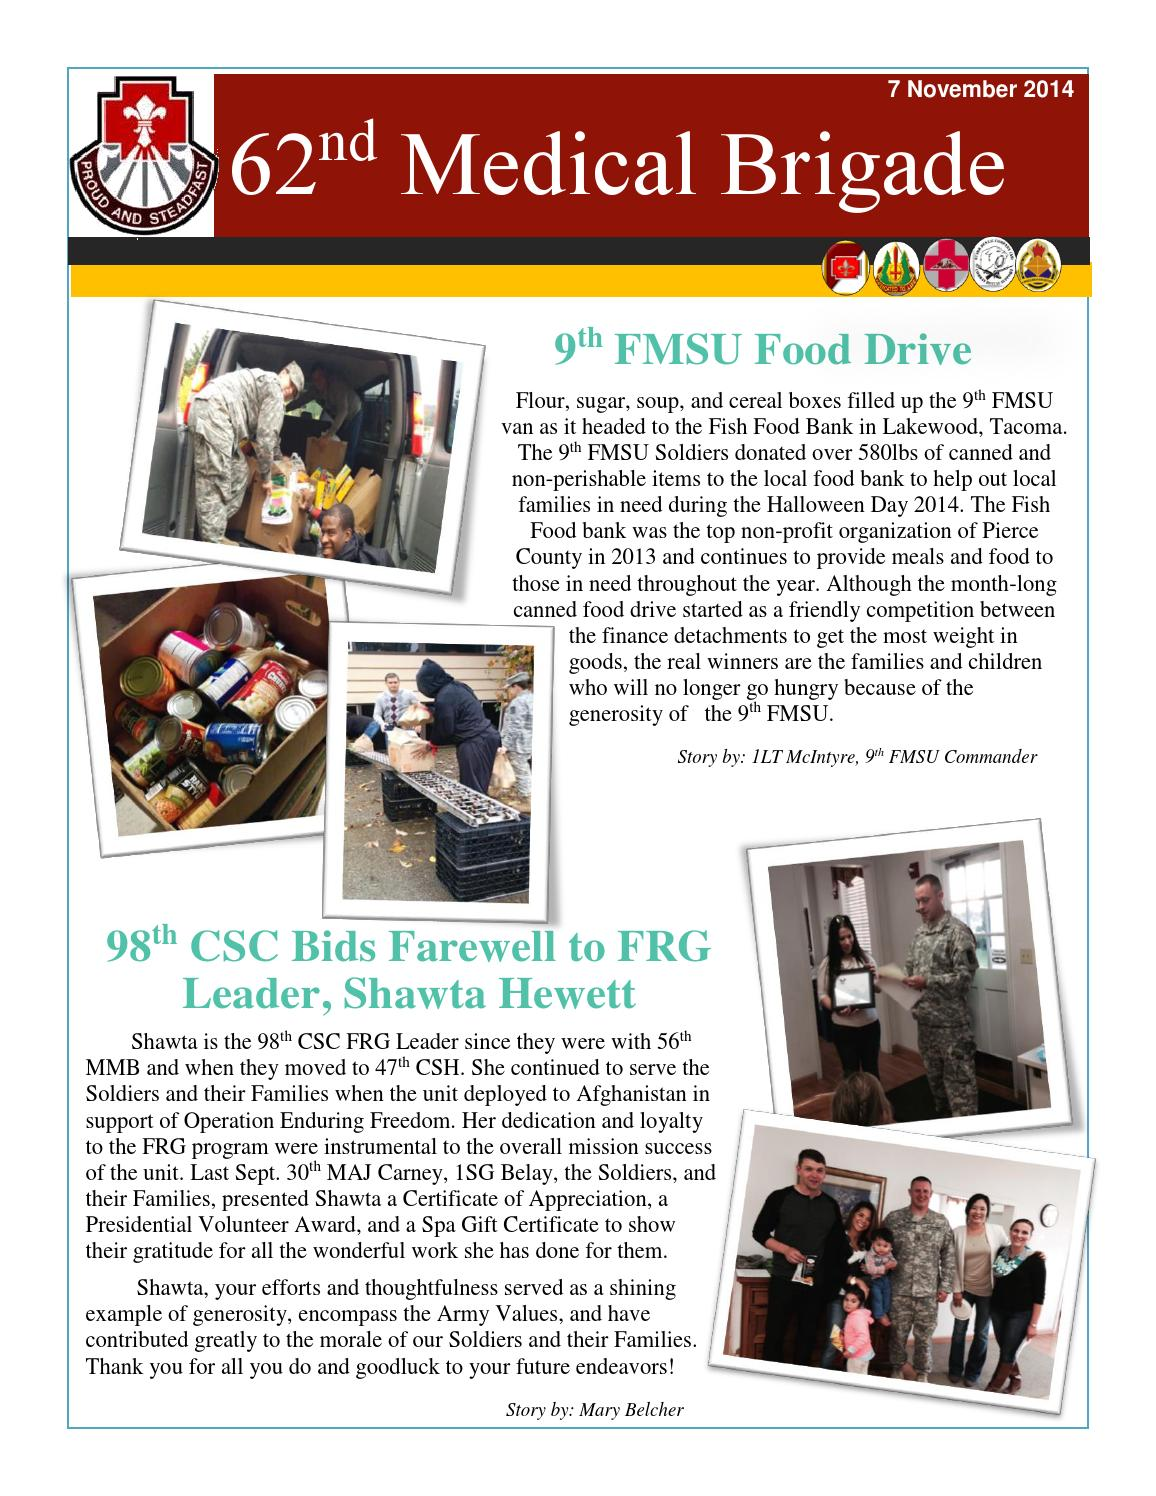 62nd med bde newsletter by m belcher issuu for Fish food bank tacoma